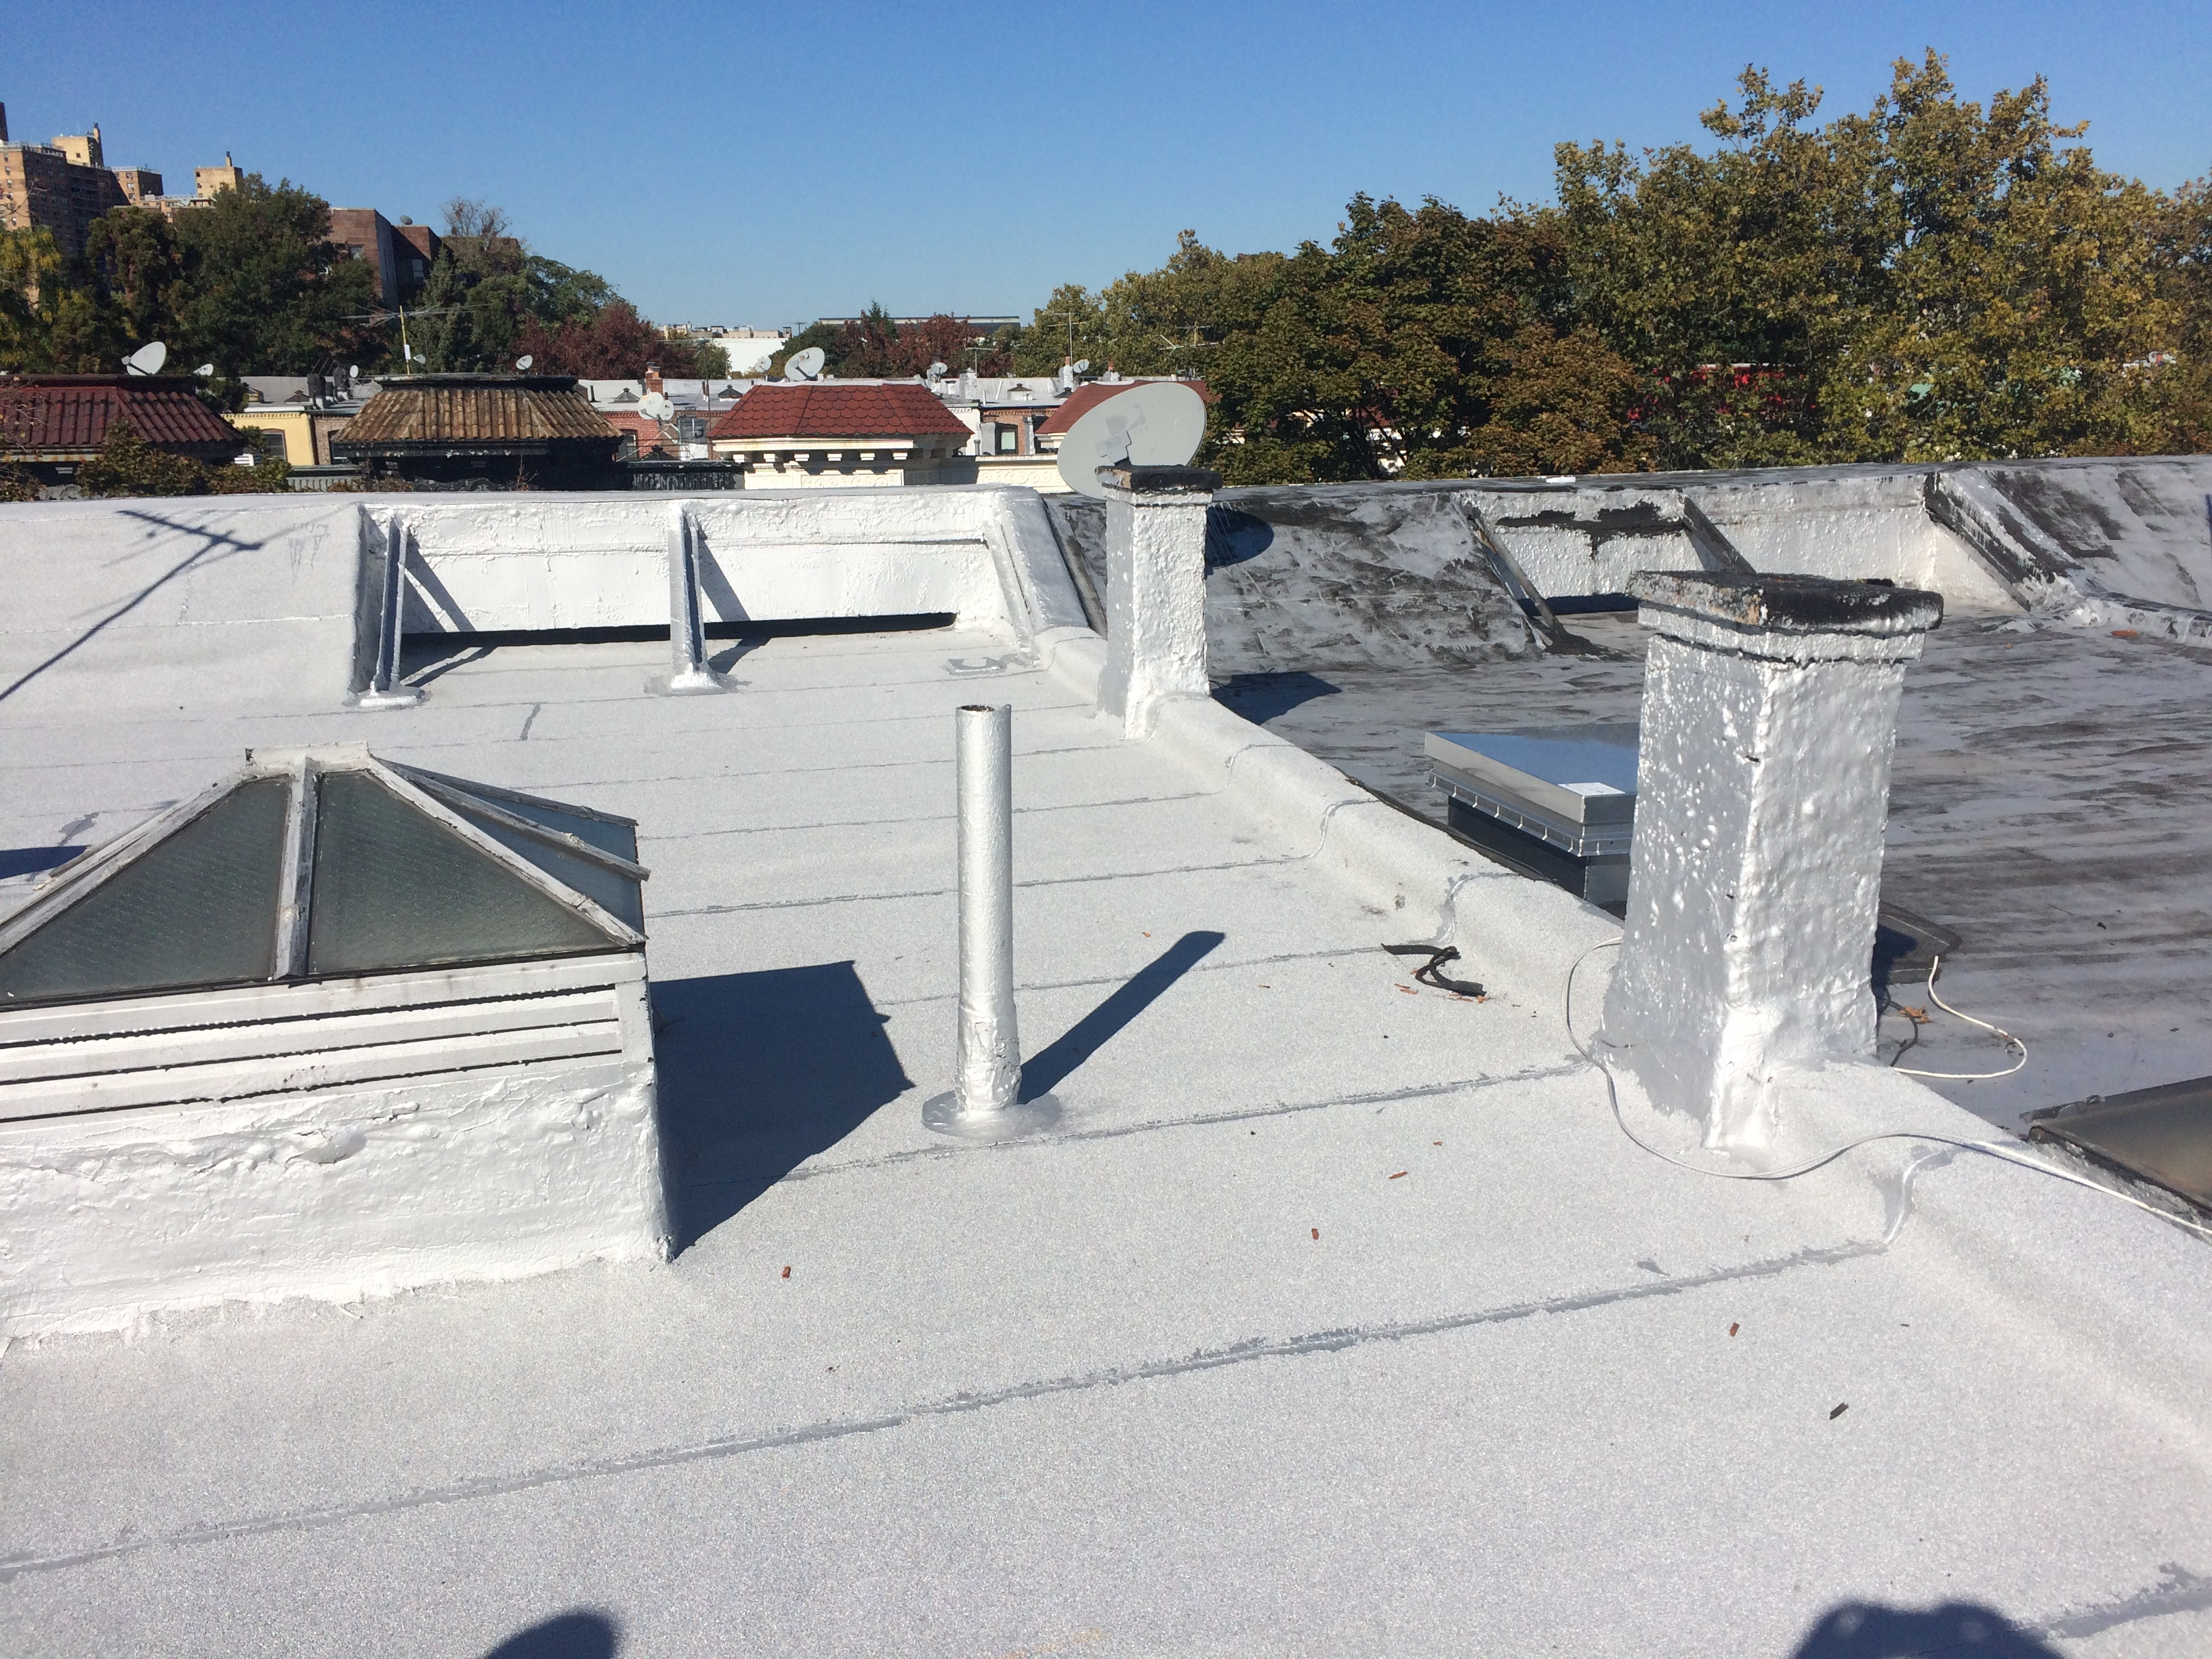 How to install a solar system on my roof - The Maple Street Roof Pre Installation